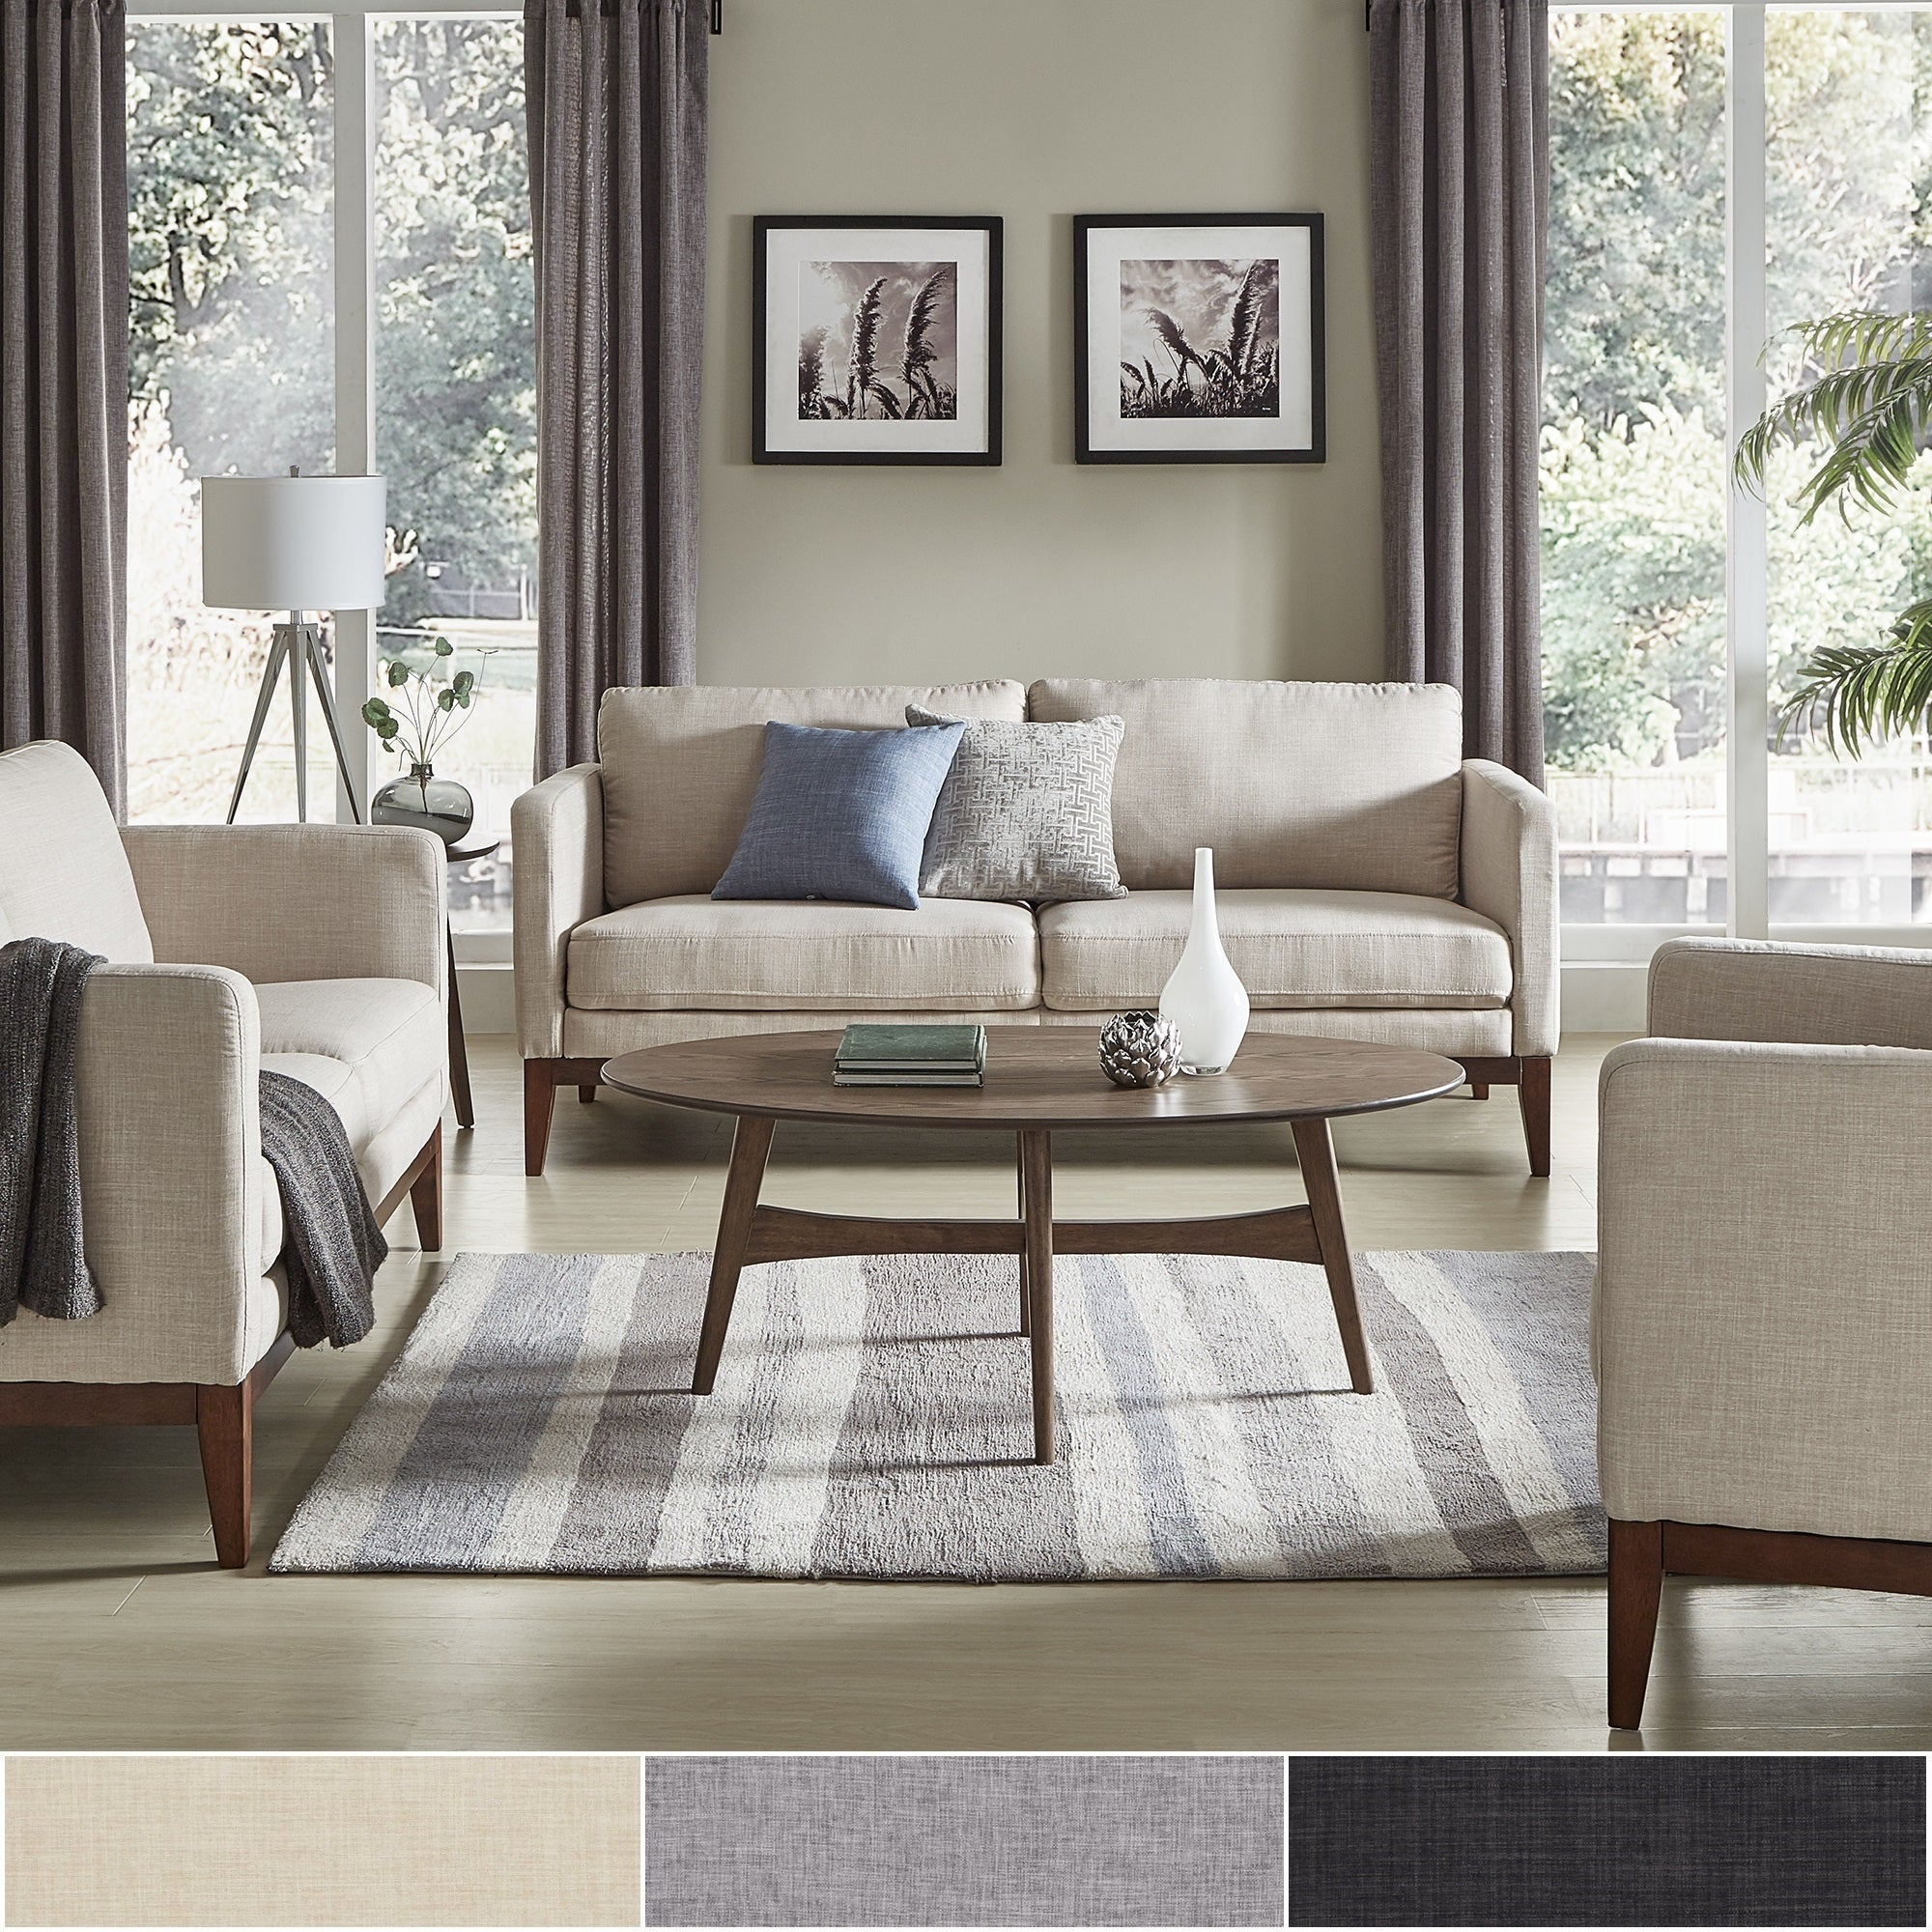 Perry linen upholstered living room set by inspire q modern